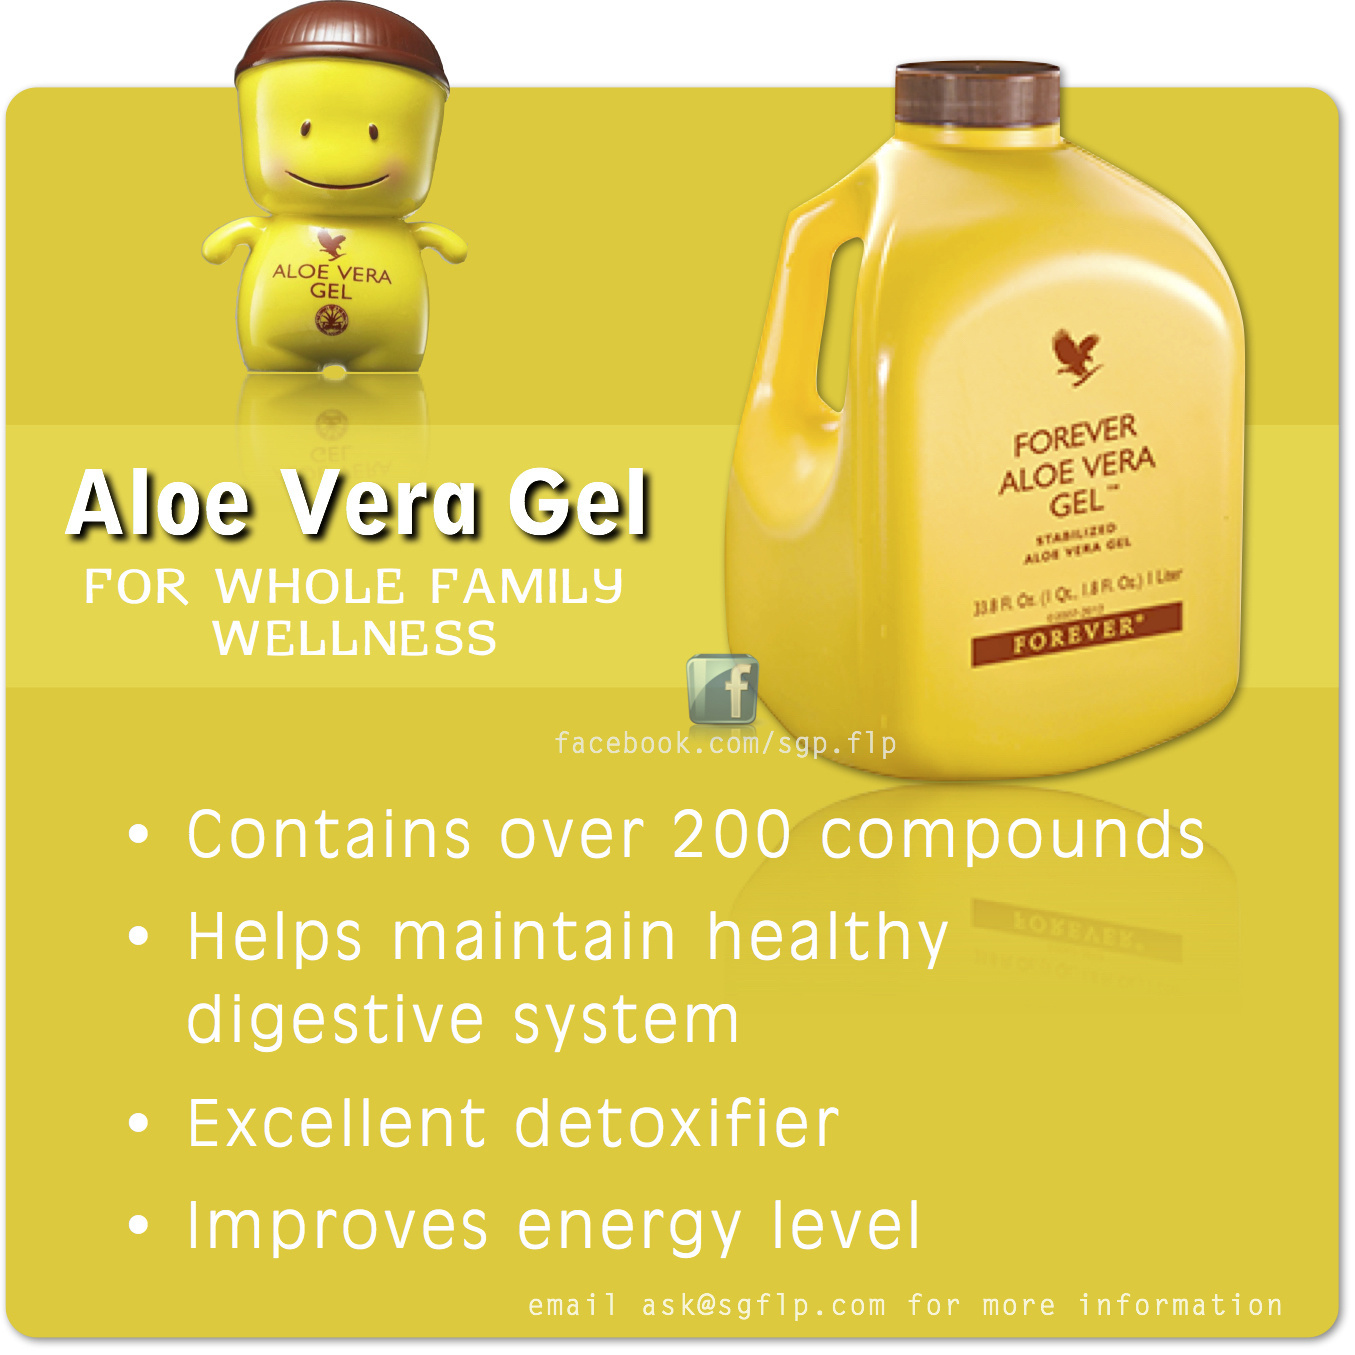 Aloe vera gel for weight loss